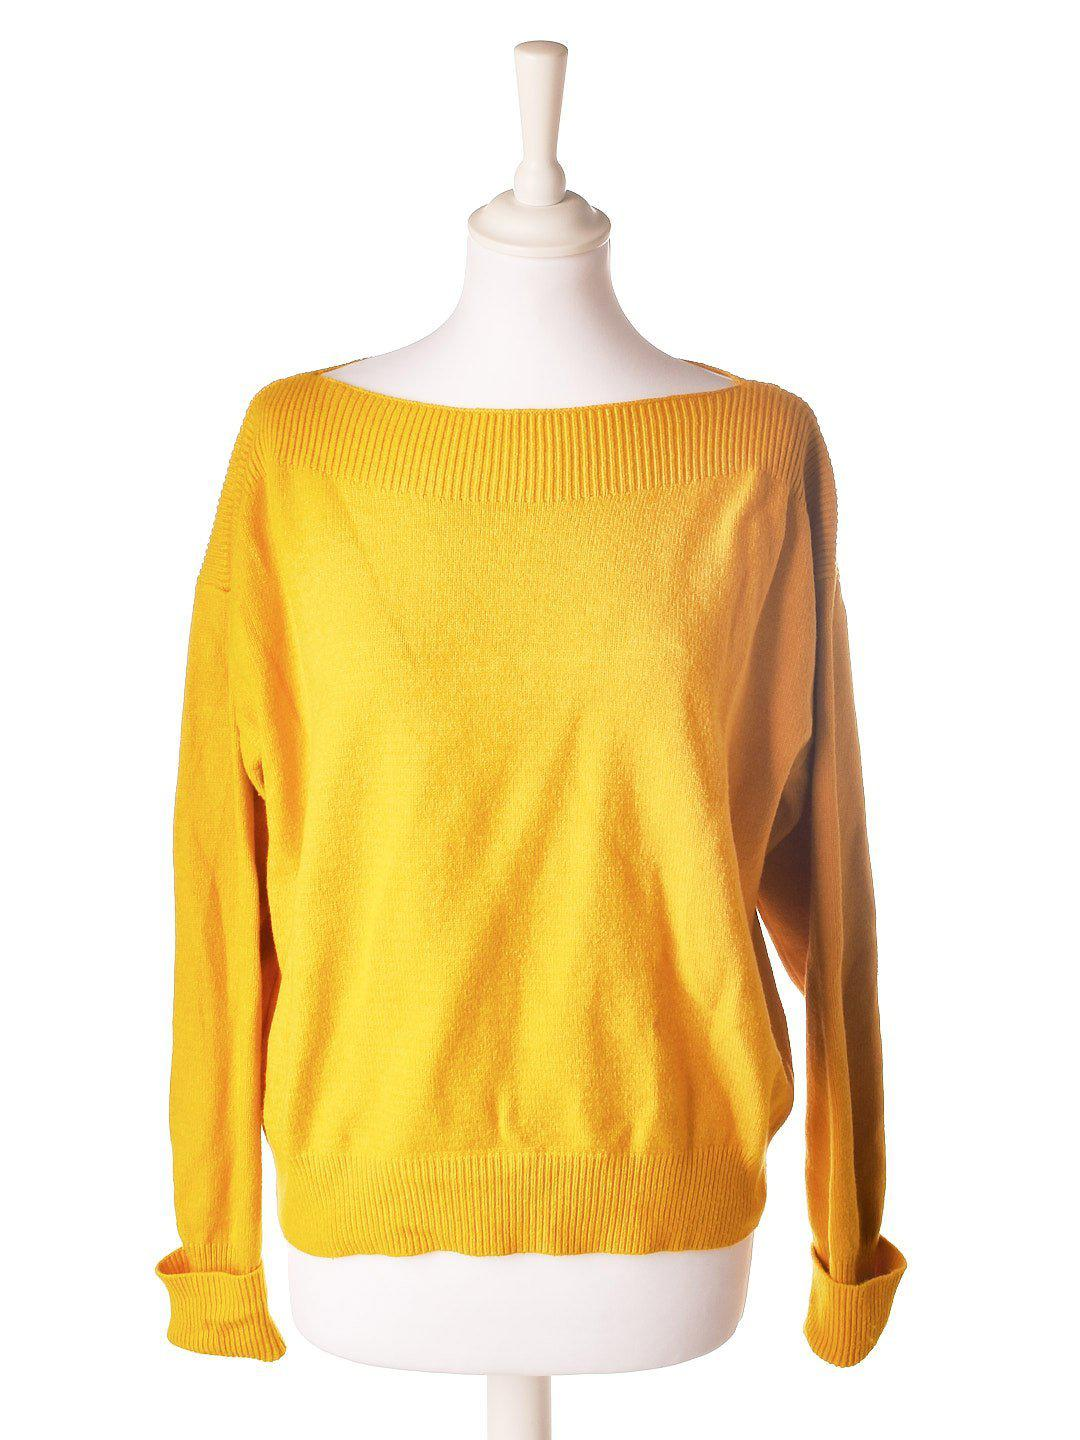 Gul Sweater med Boat Neck